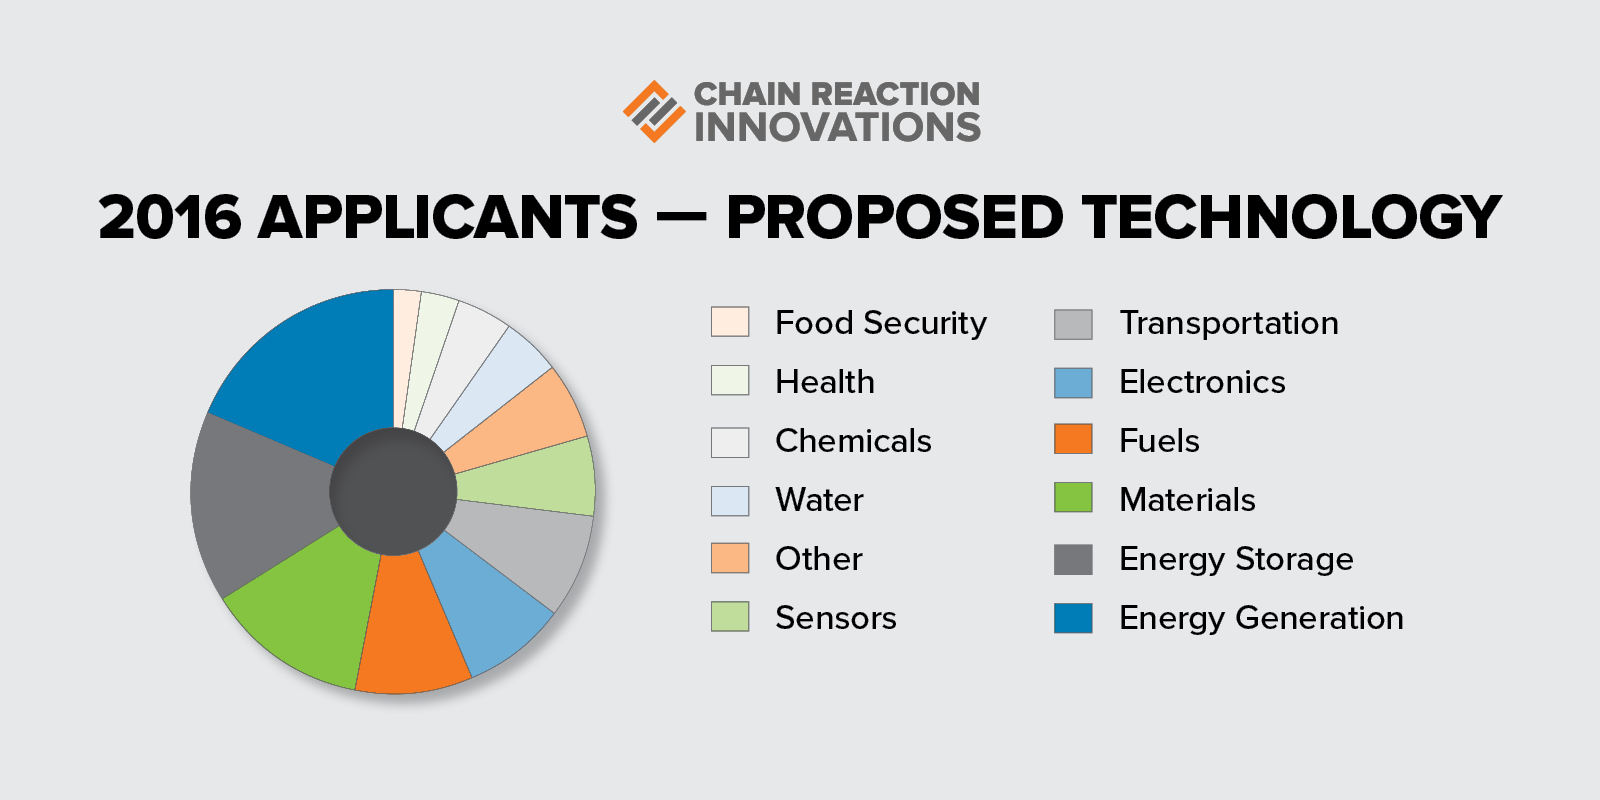 2016 Applicants - Proposed Technology